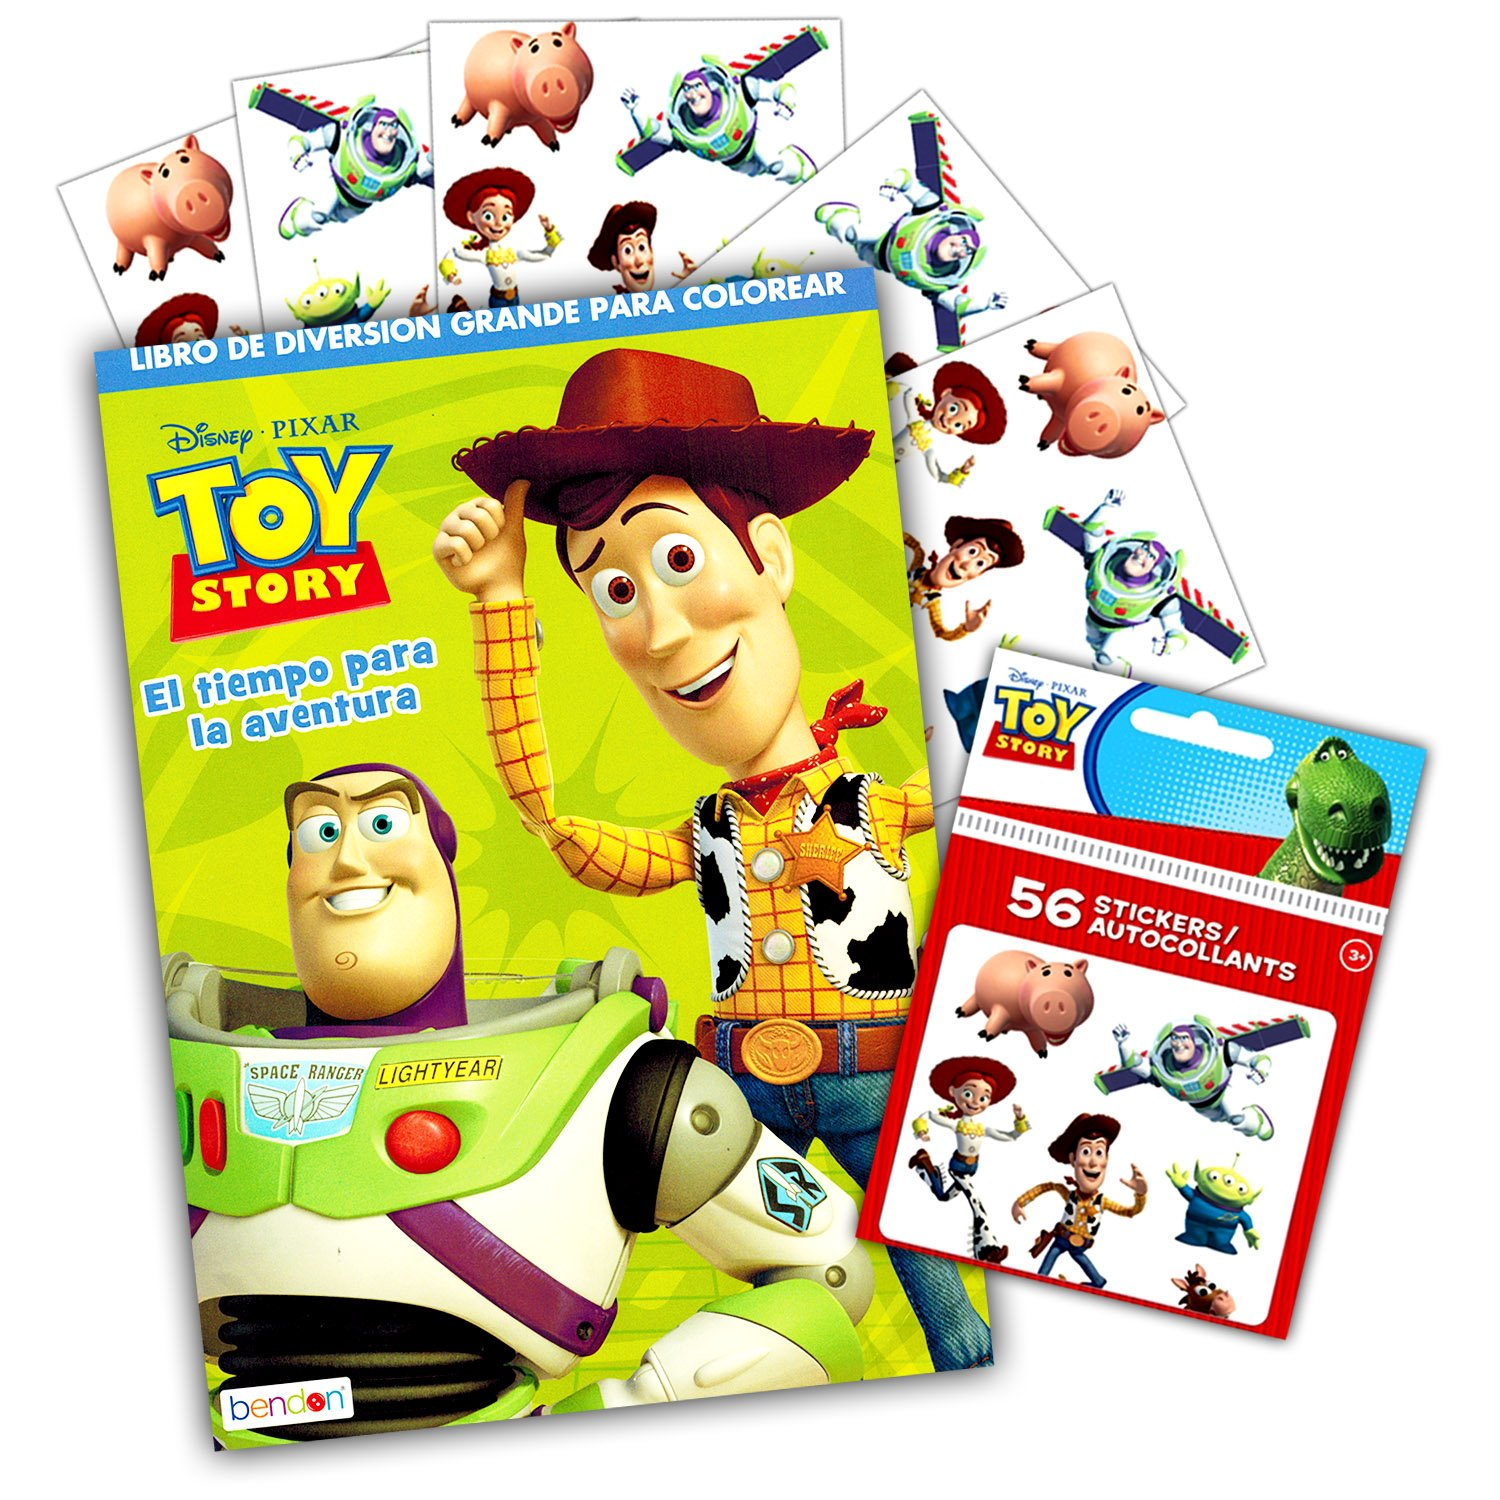 Amazon.com: Disney Pixar Toy Story Coloring and Activity Book with ...